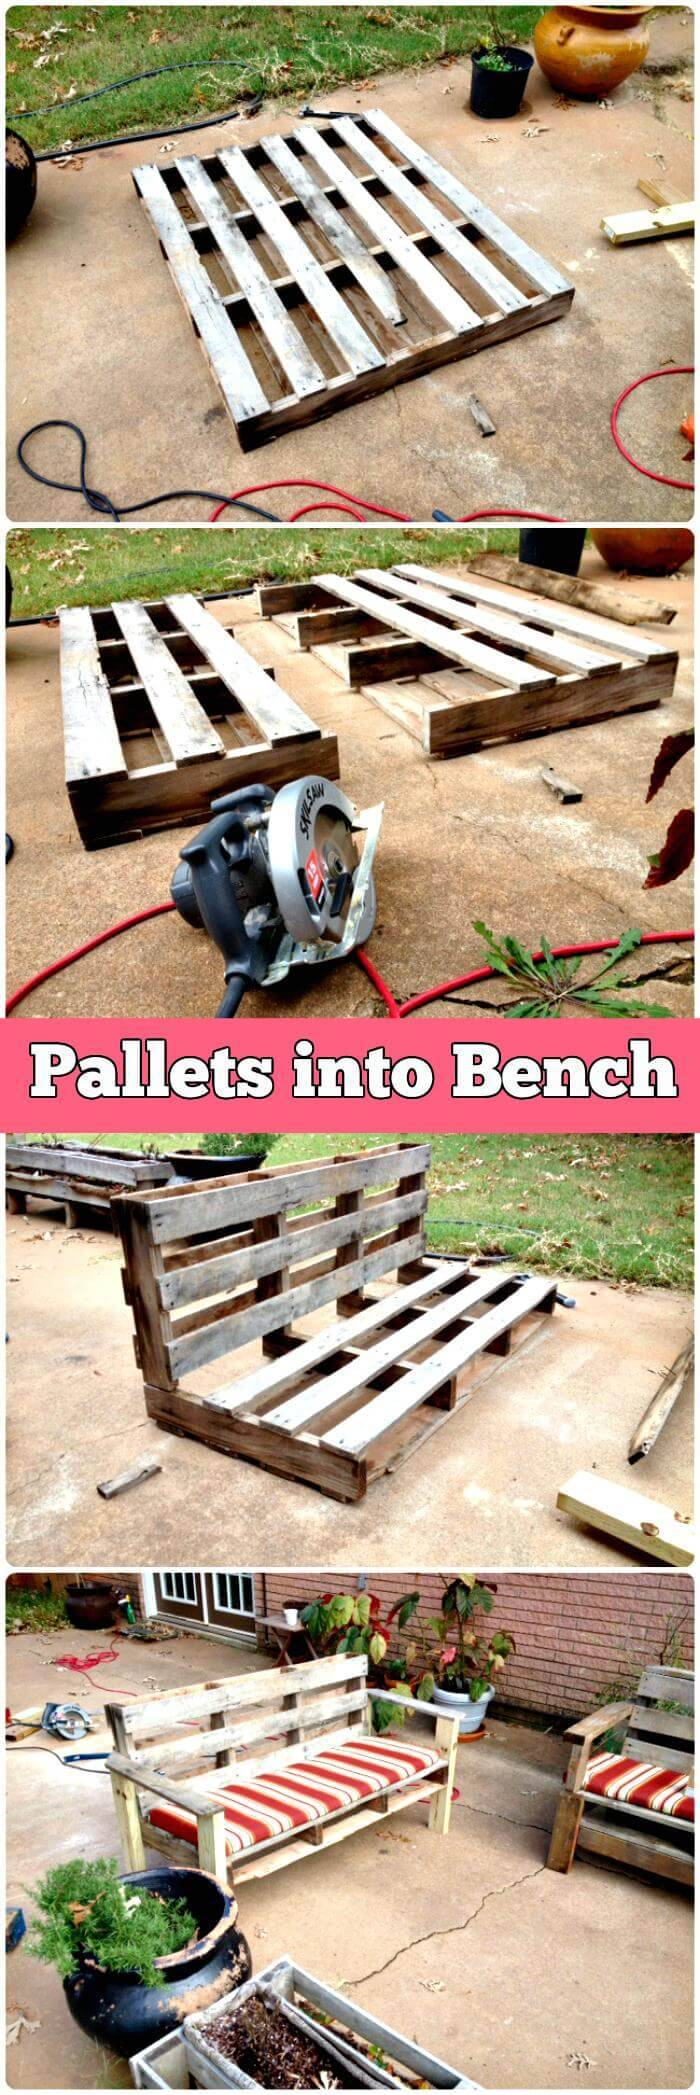 Repurposed Pallet Outdoor Patio Bench